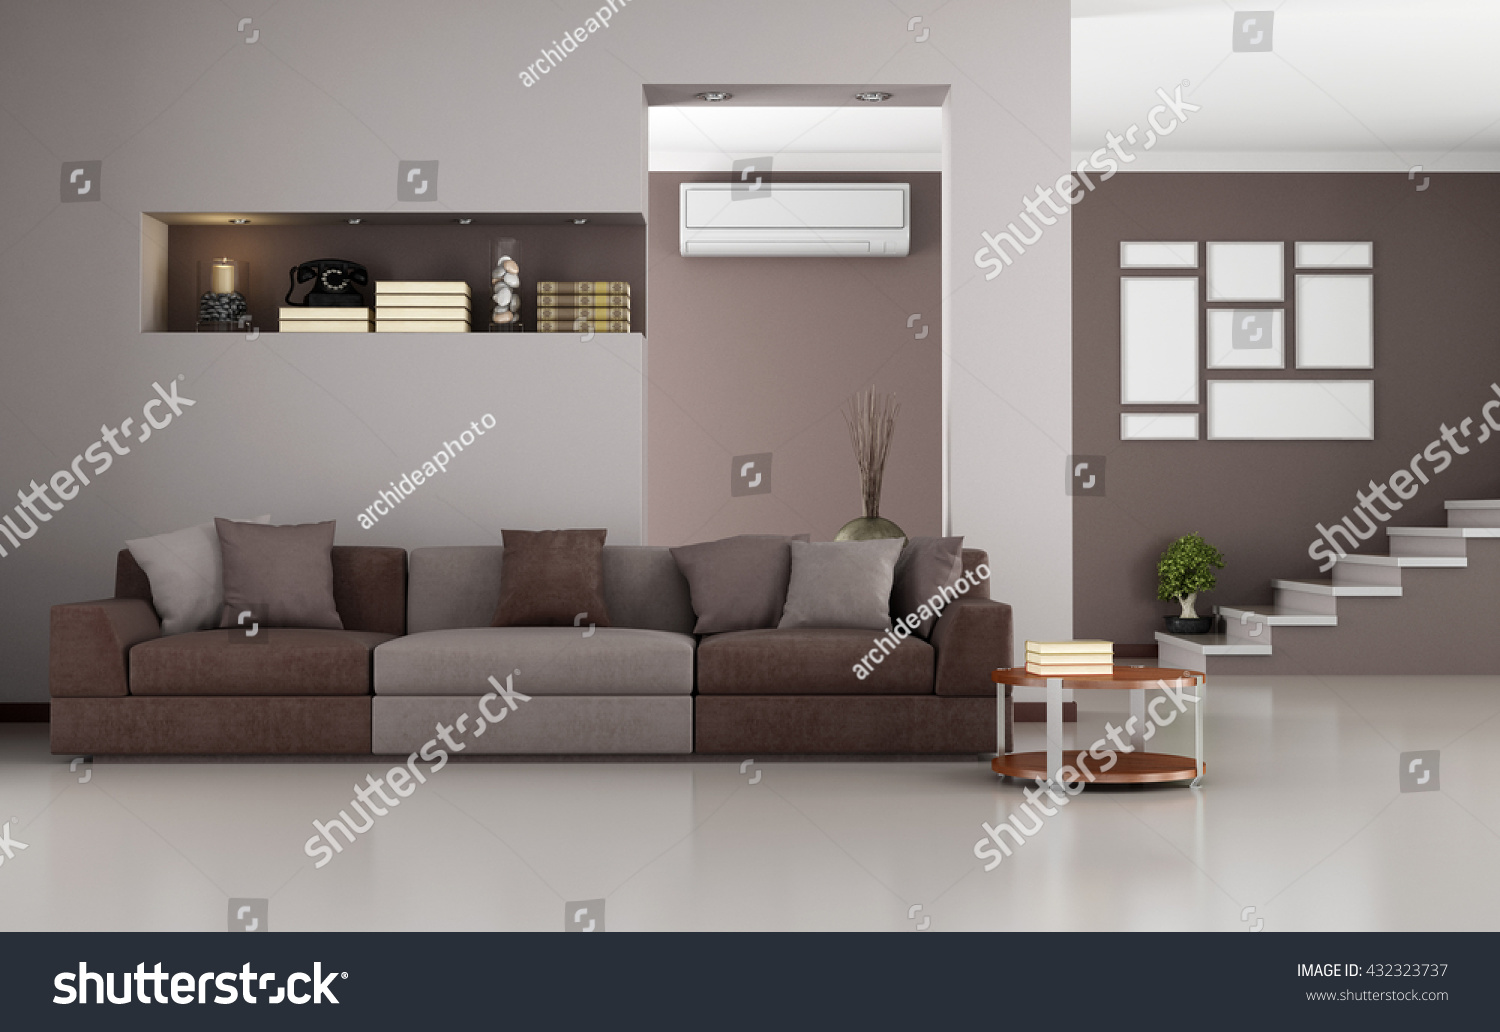 Beige And Brown Modern Living Room With Staircase And Air Conditioner   3d  Rendering